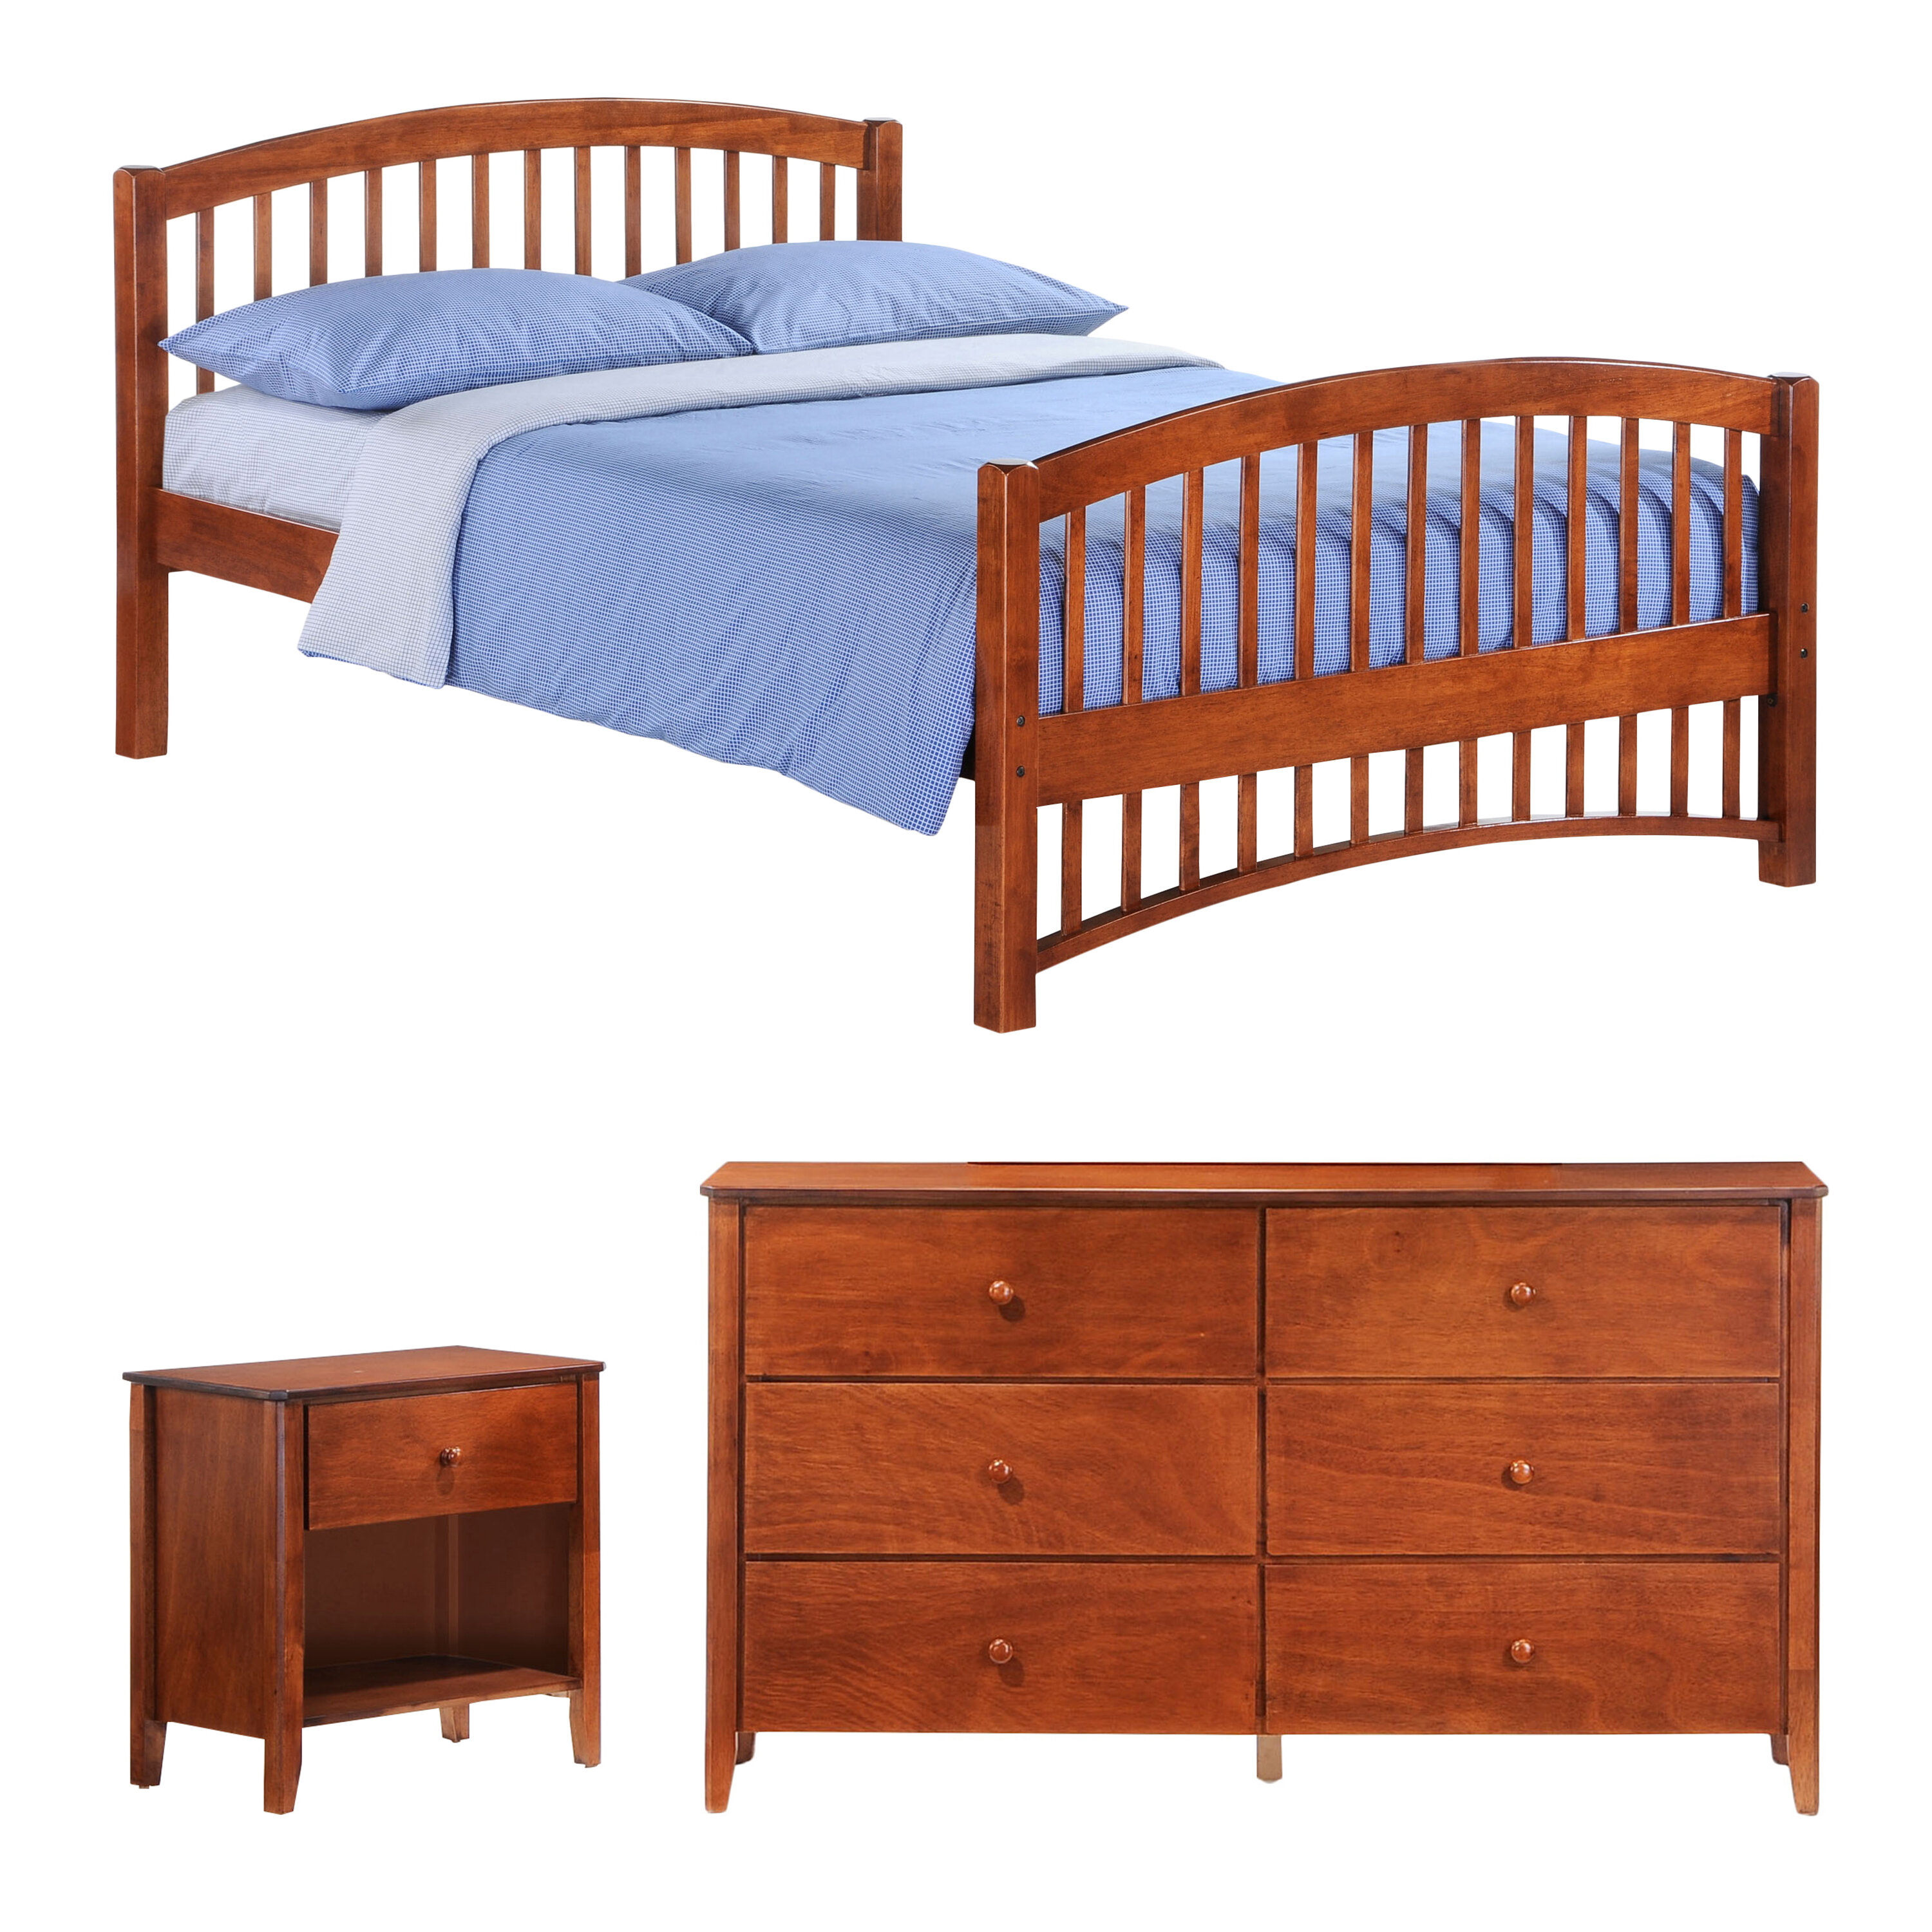 Kids Bedroom Furniture Stores: Kids Bedroom Sets You'll Love In 2019